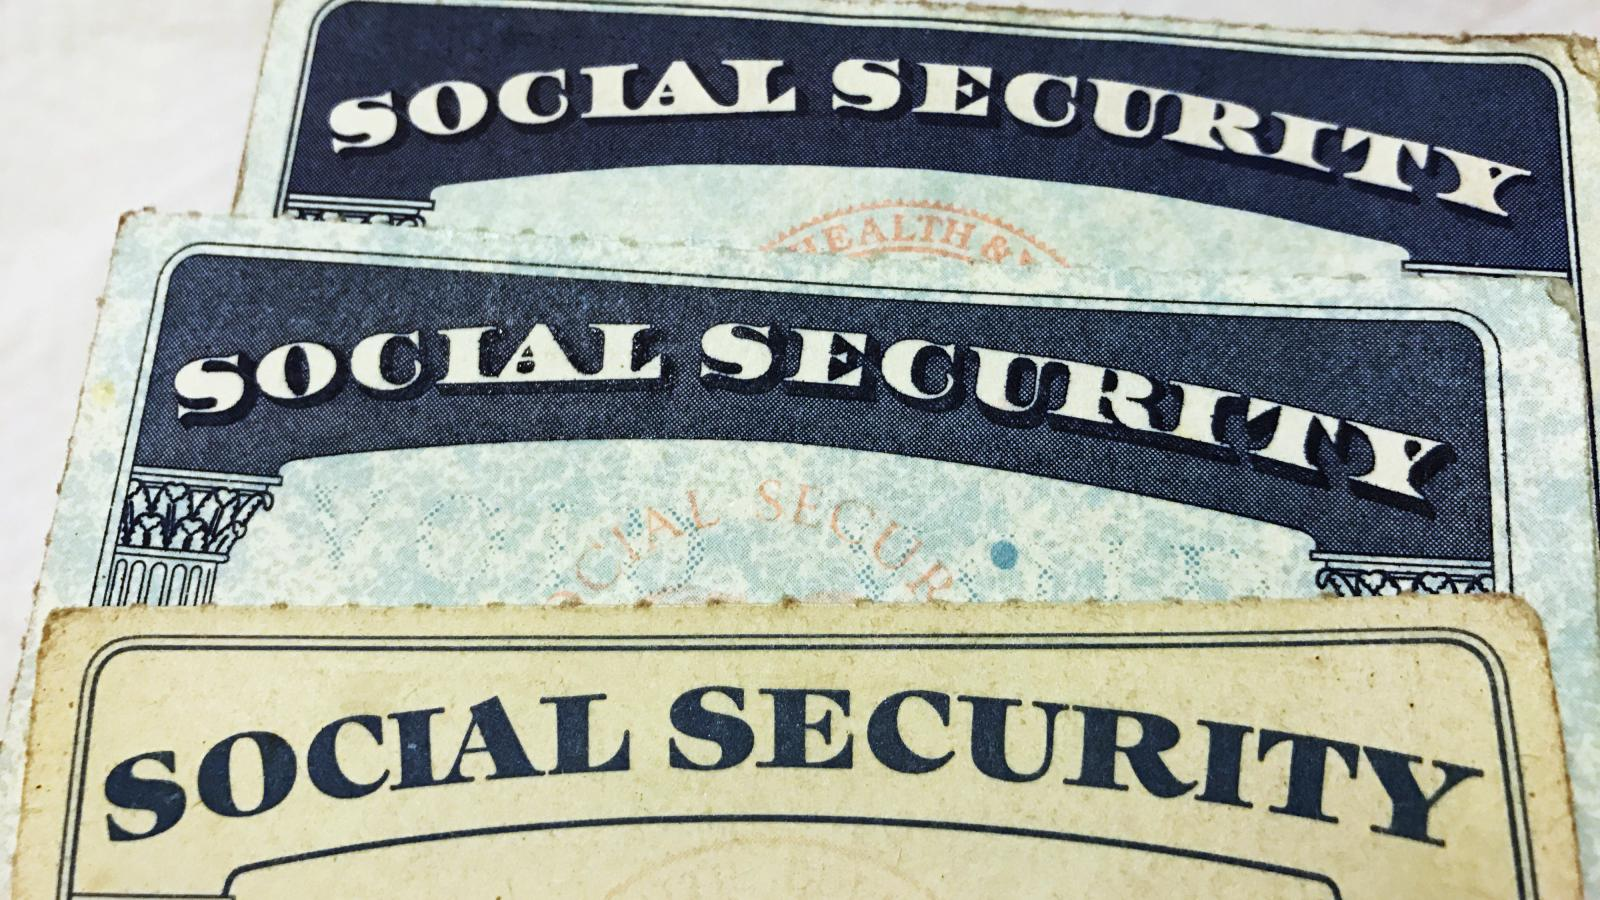 Social security numbers are no longer safe or practical in the US